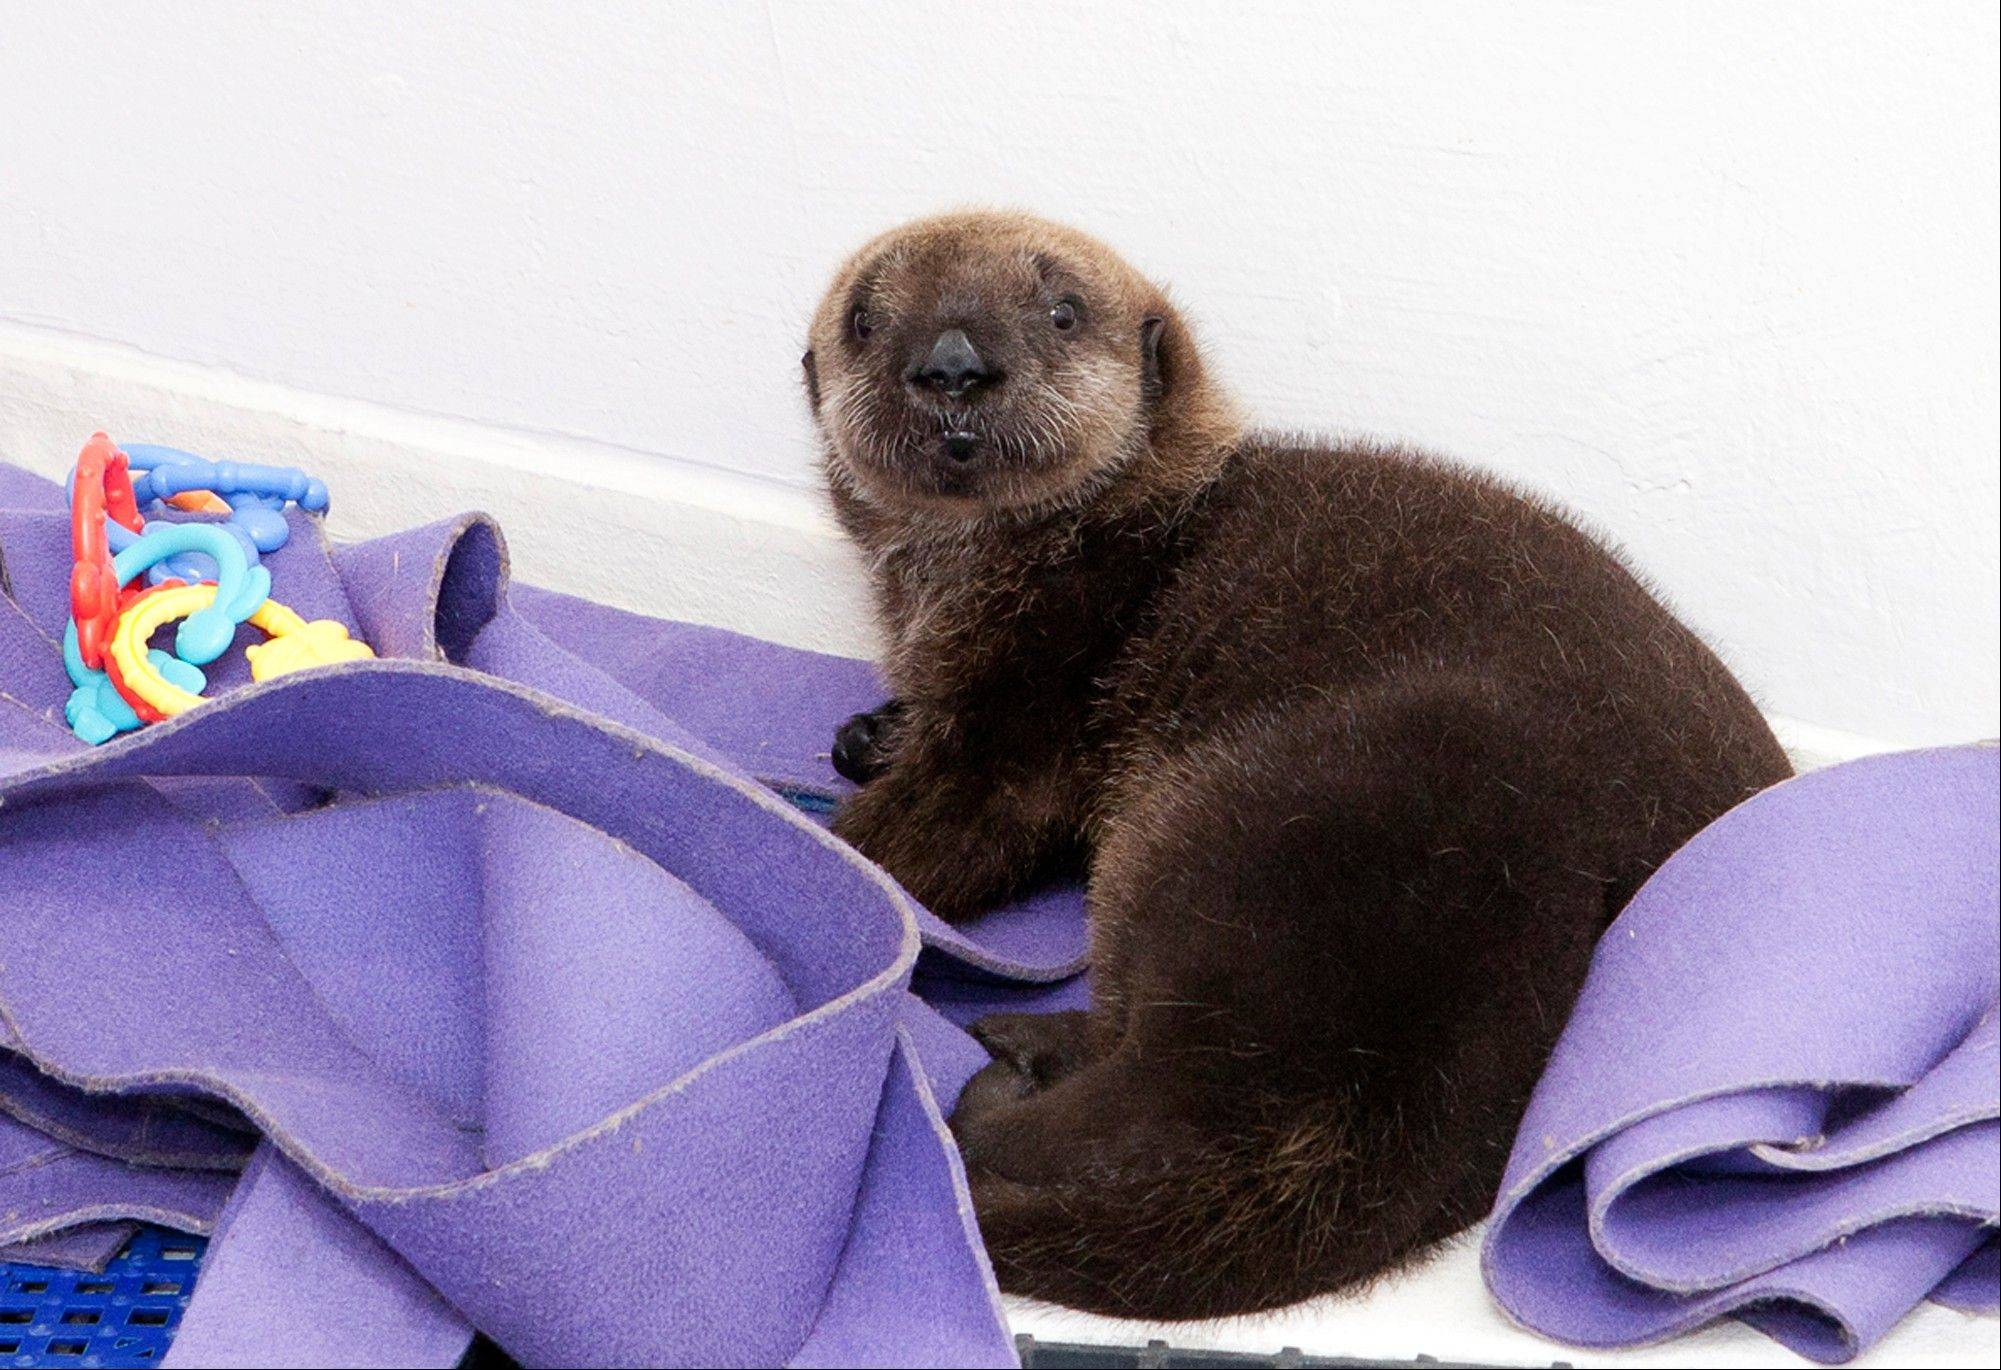 Shedd Aquarium rescues baby sea otter